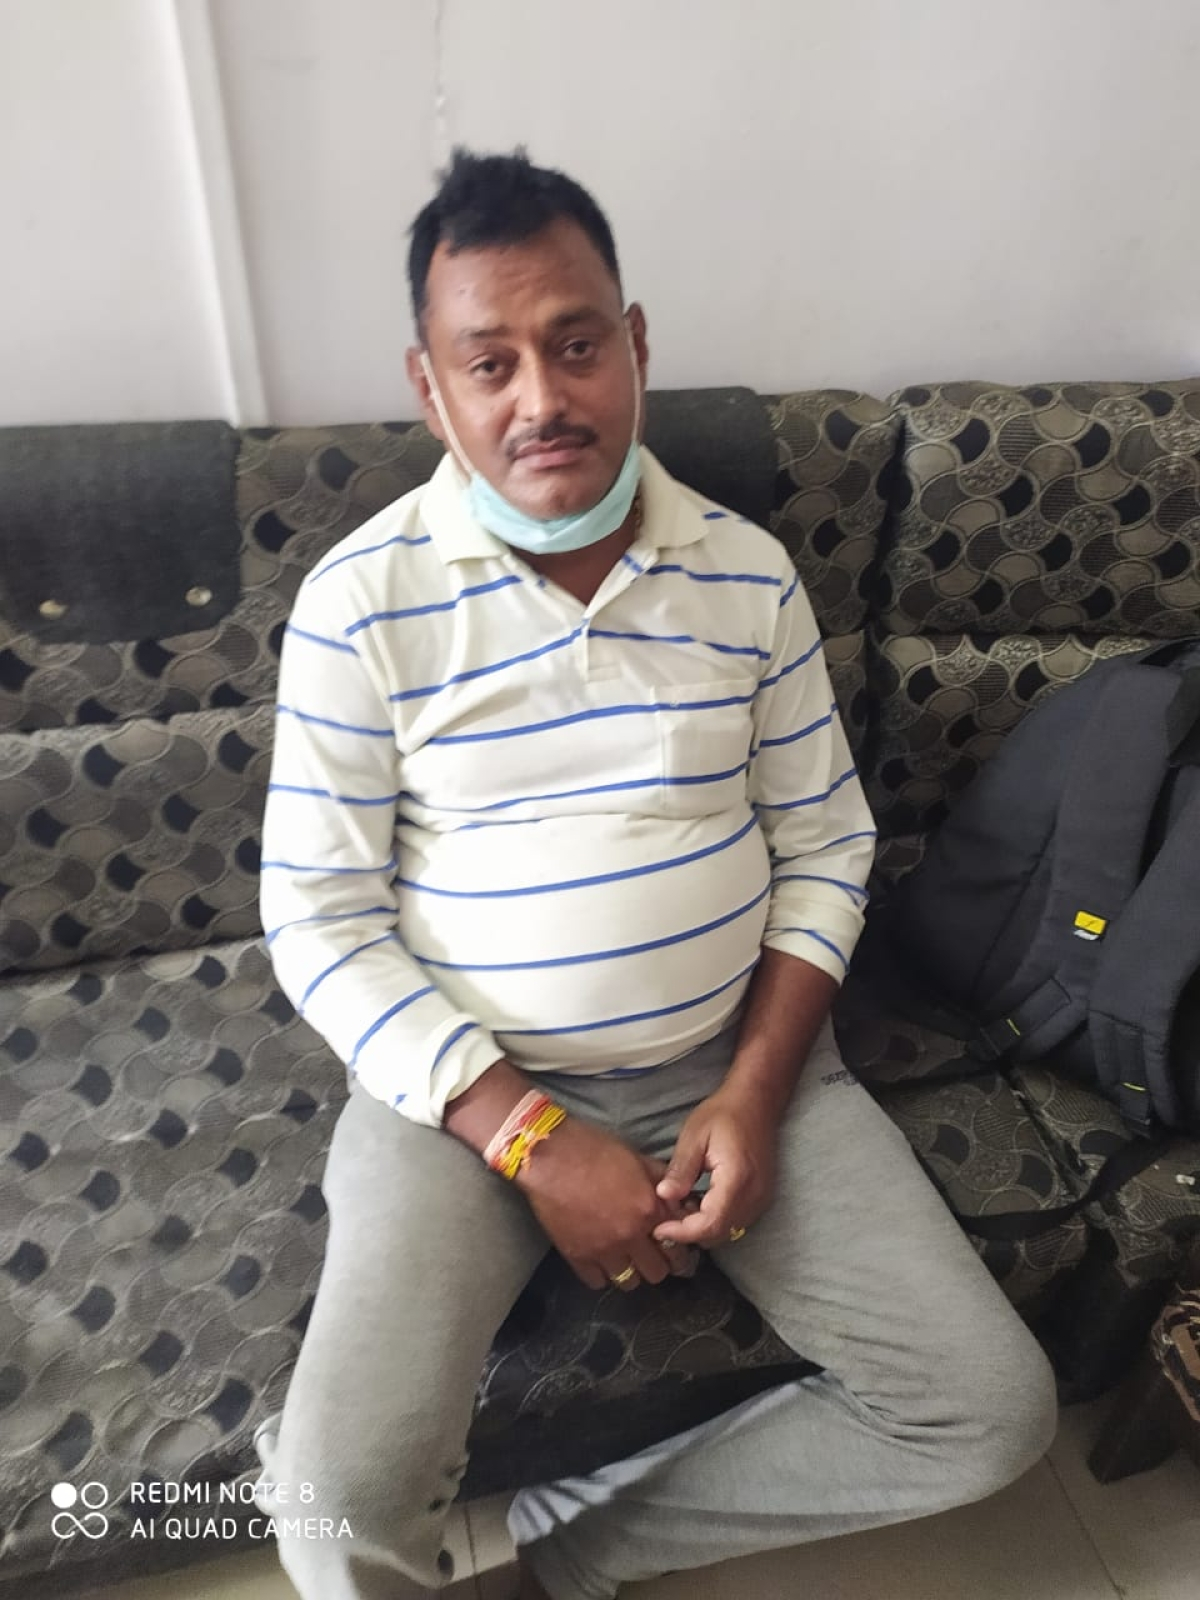 In Pictures: Gangster Vikas Dubey arrested in Madhya Pradesh's Ujjain